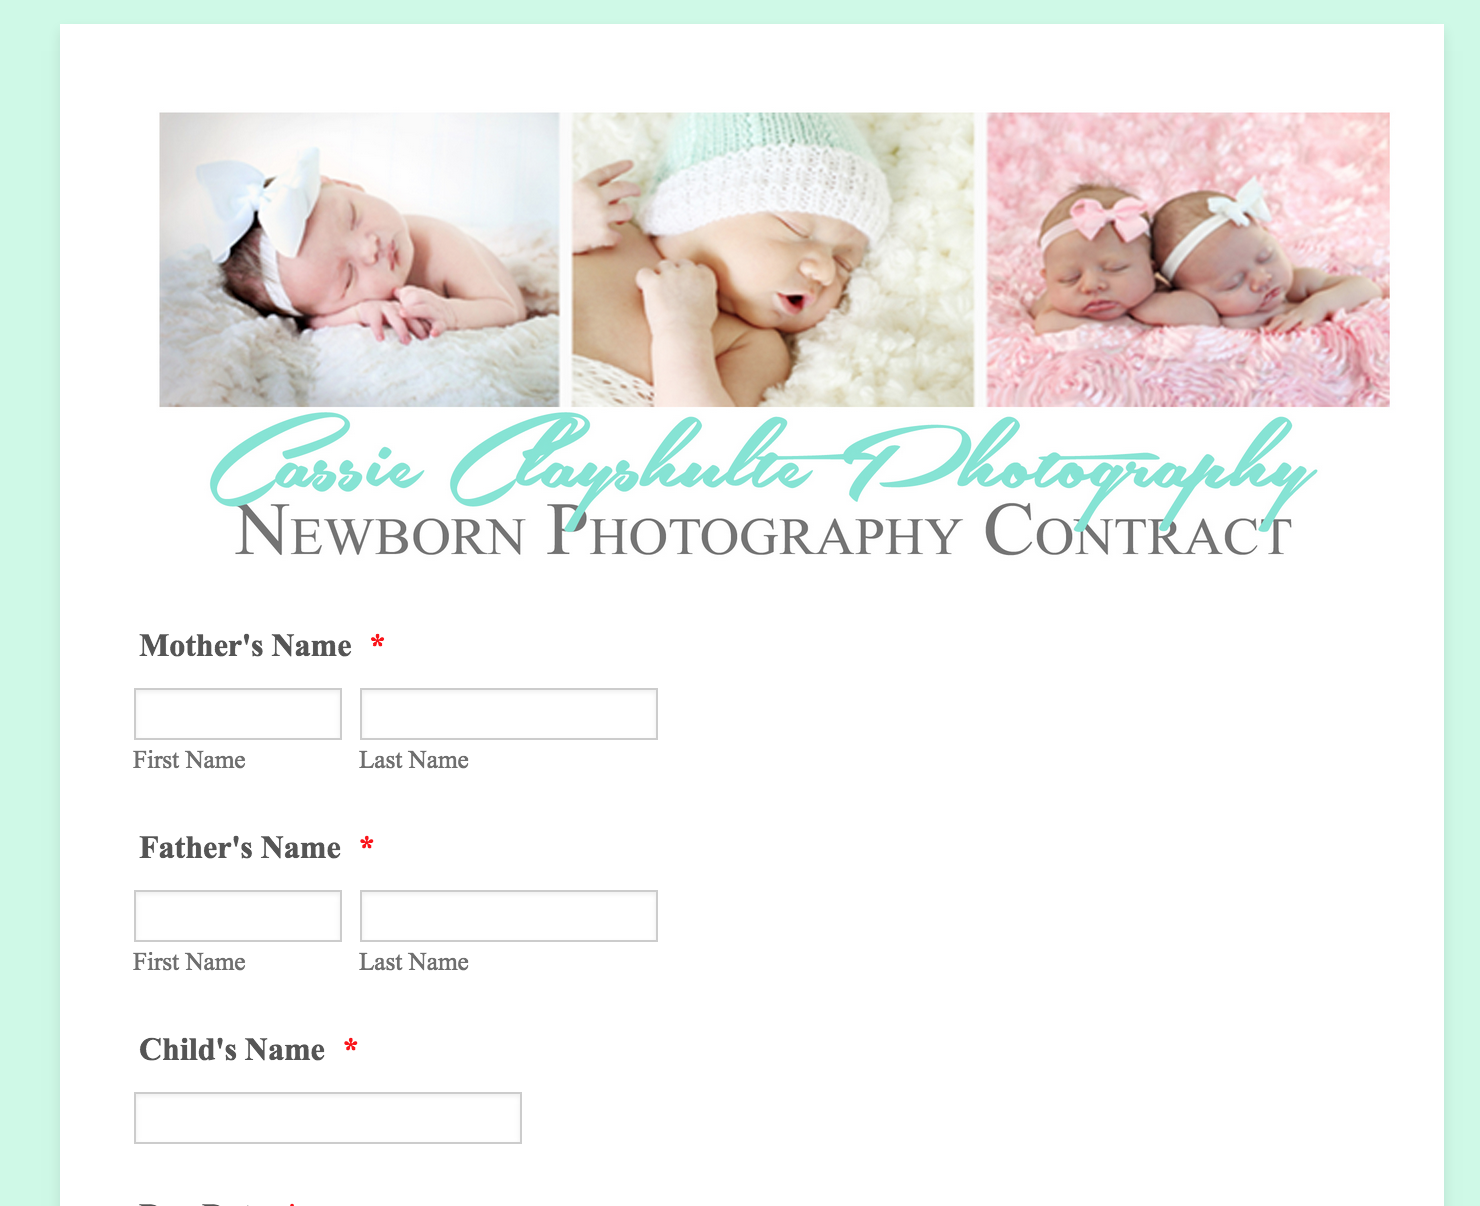 Sample photographer form